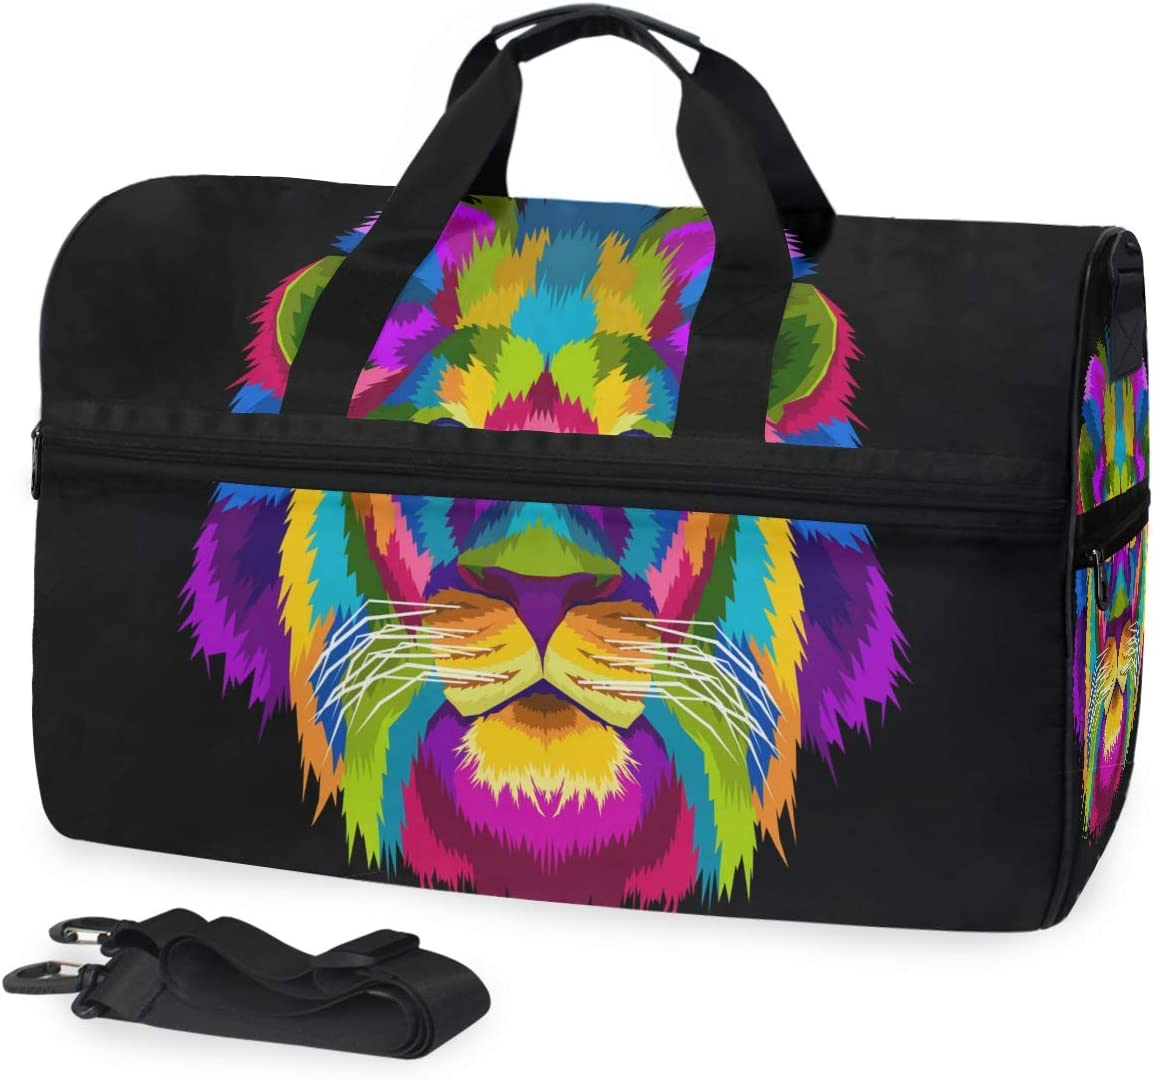 Sports Swim Gym Bag with Overseas Max 63% OFF parallel import regular item Shoes Wee Colorful Art Lion Compartment